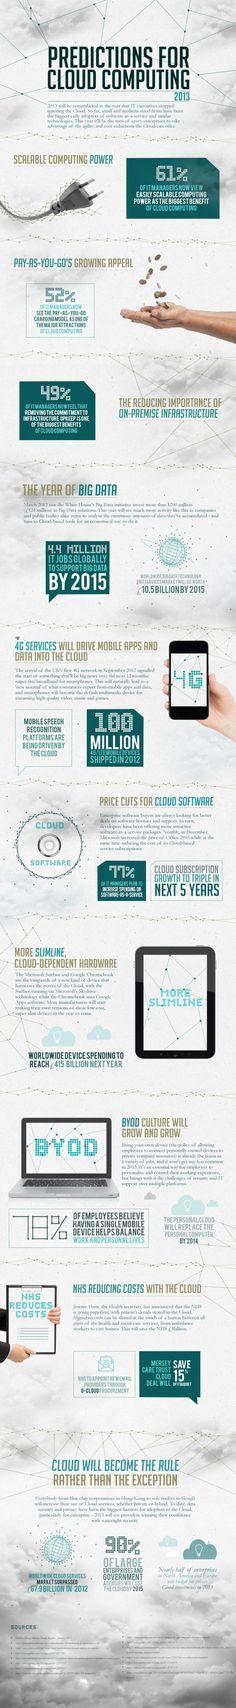 PREDICTIONS FOR CLOUD COMPUTING 2013[INFOGRAPHIC]